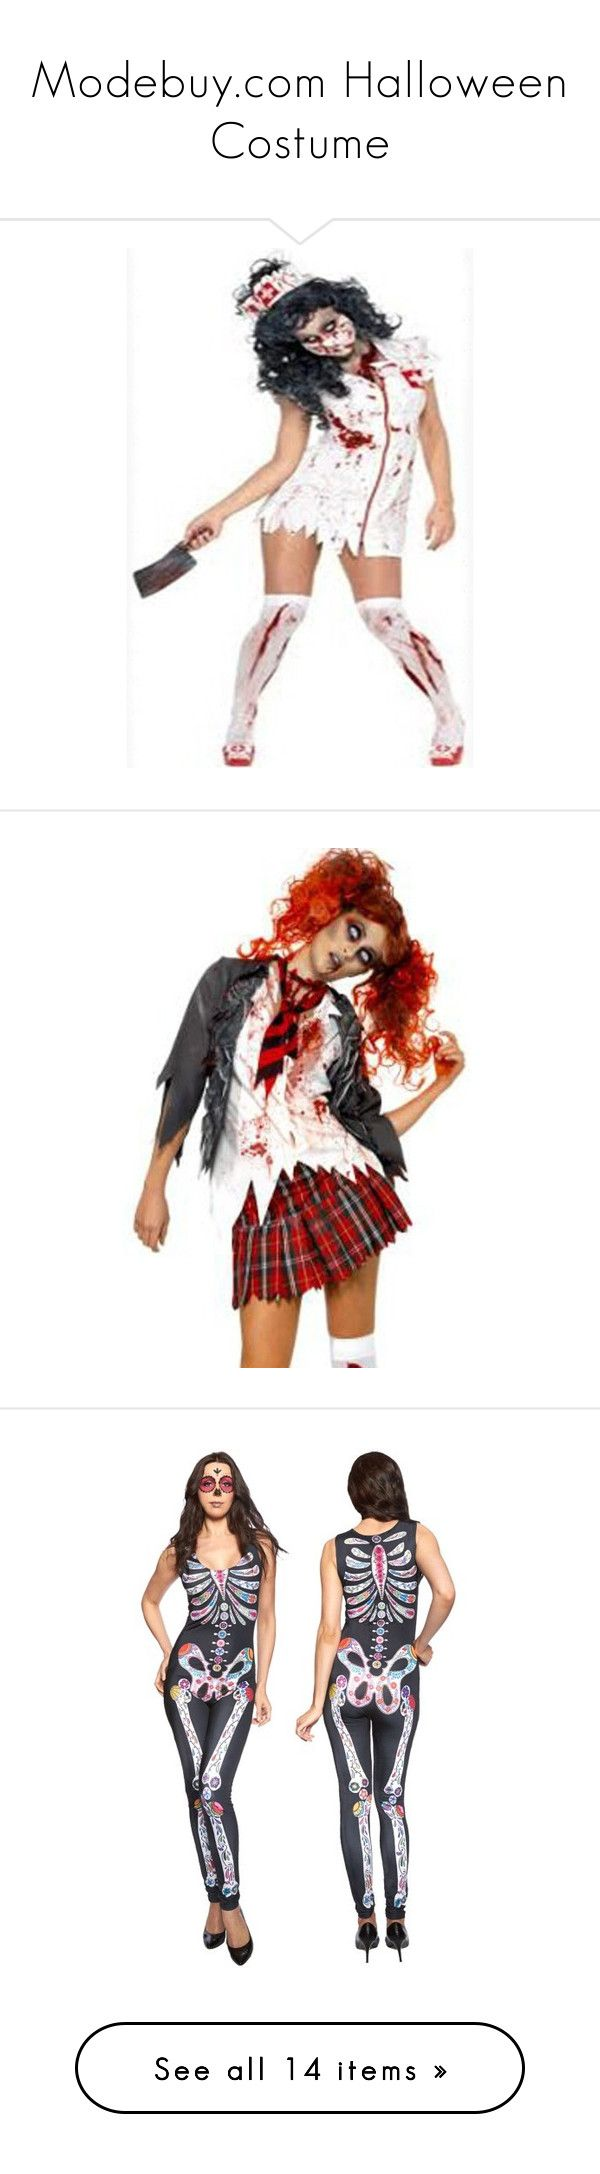 """""""Modebuy.com Halloween Costume"""" by modebuy ❤ liked on Polyvore featuring modebuy, costumes, white nurse costume, living dead costume, adult costumes, zombie costume, nurse costume, schoolgirl costume, zombie school girl costumes and zombie school girl"""